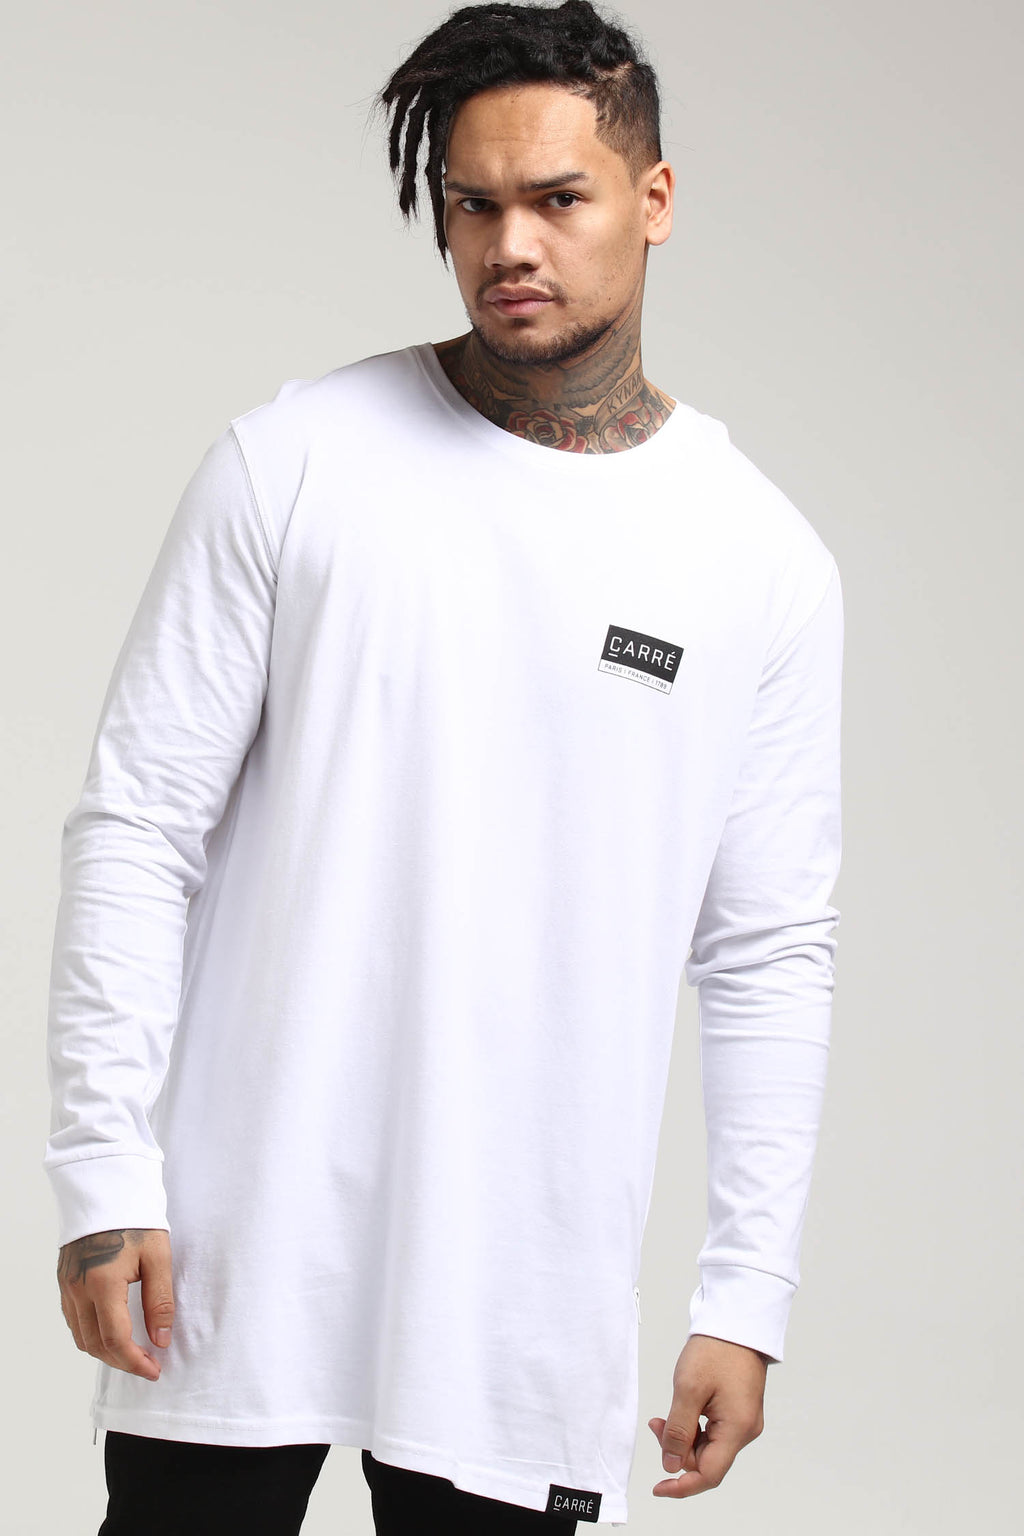 Carré Core Capone 3 Long Sleeve Tee White